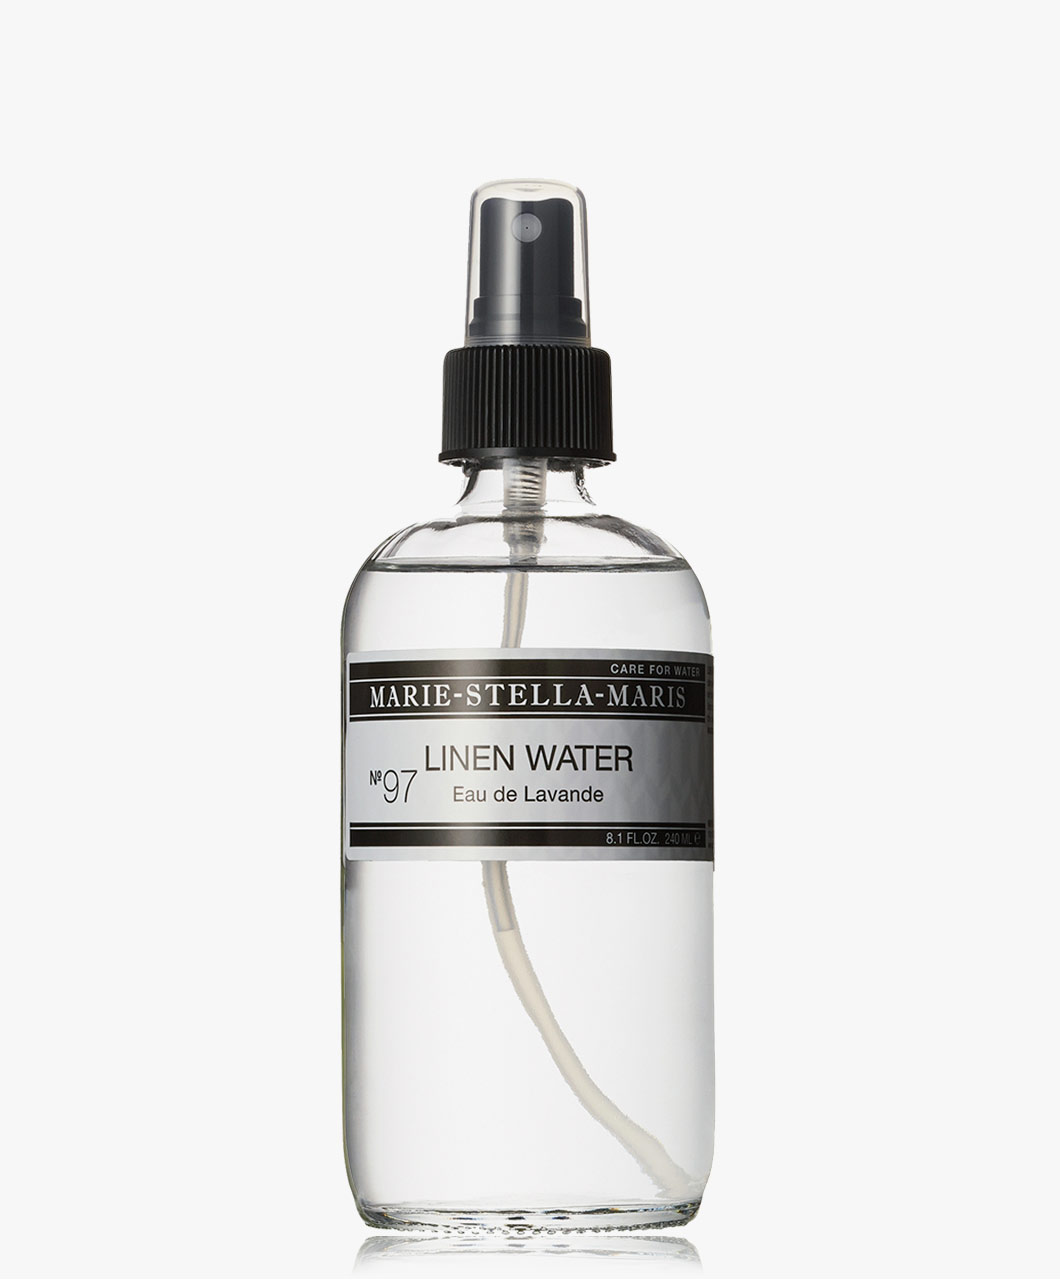 marie stella maris linen water eau de lavande 43405 240 ml eau de lavande. Black Bedroom Furniture Sets. Home Design Ideas